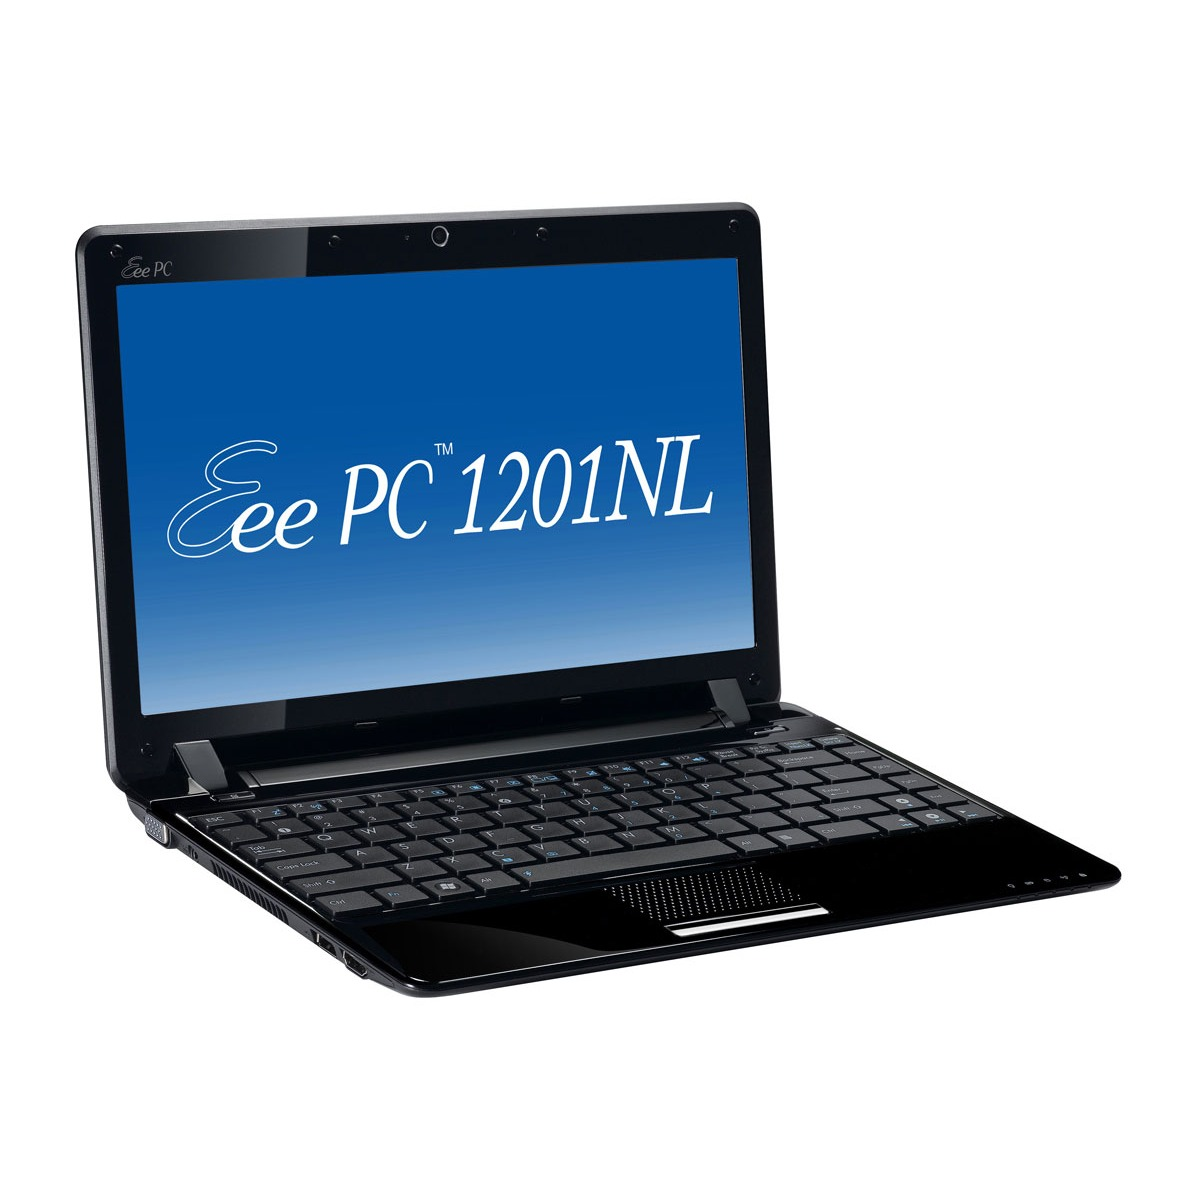 asus eee pc 1201nl asus sur. Black Bedroom Furniture Sets. Home Design Ideas